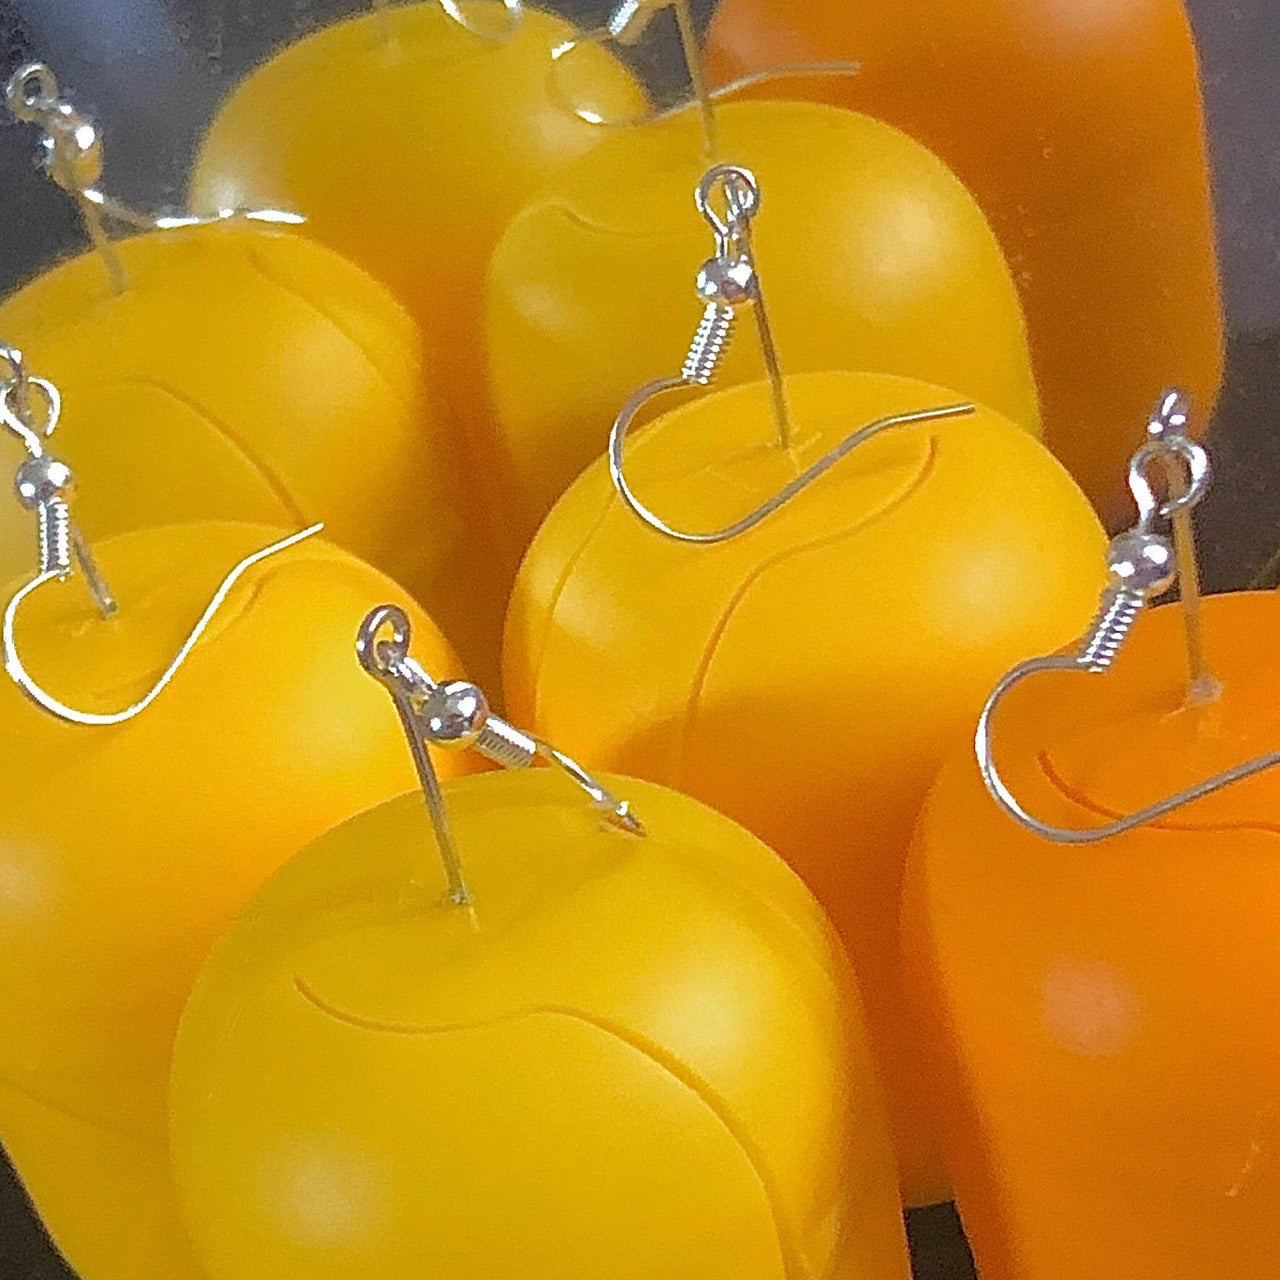 🍳 yellow/orange egg secret hiding place sterling silver earrings 🍳